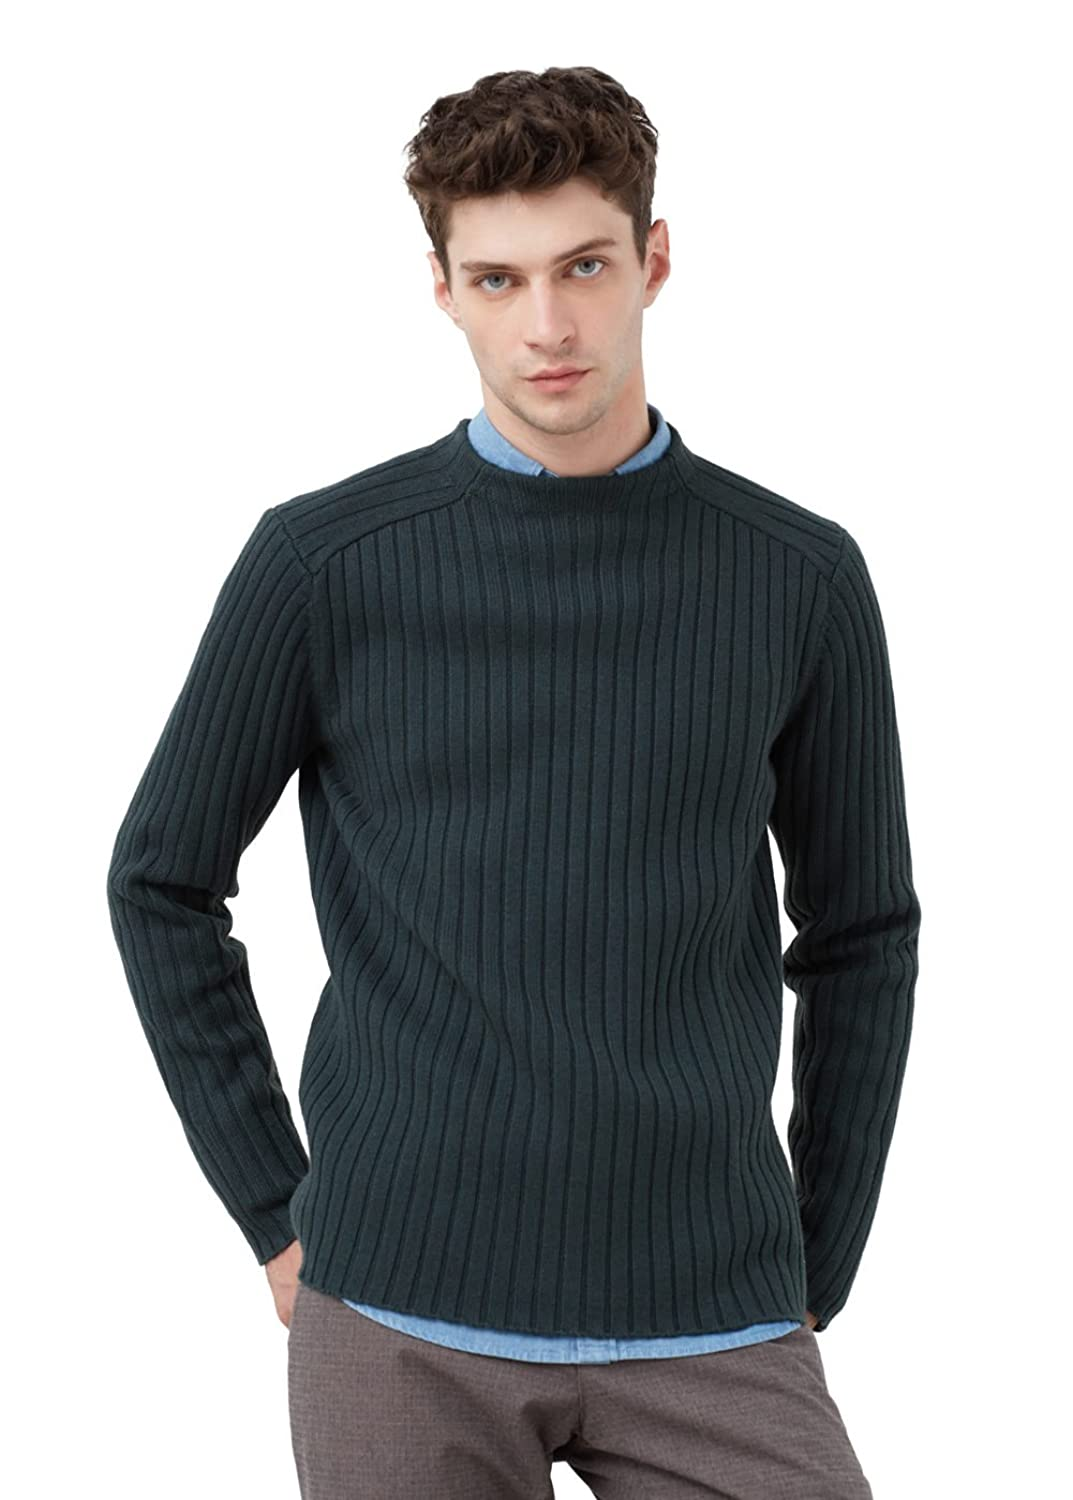 MANGO MAN - Gerippter pullover aus Pullover woll-mix